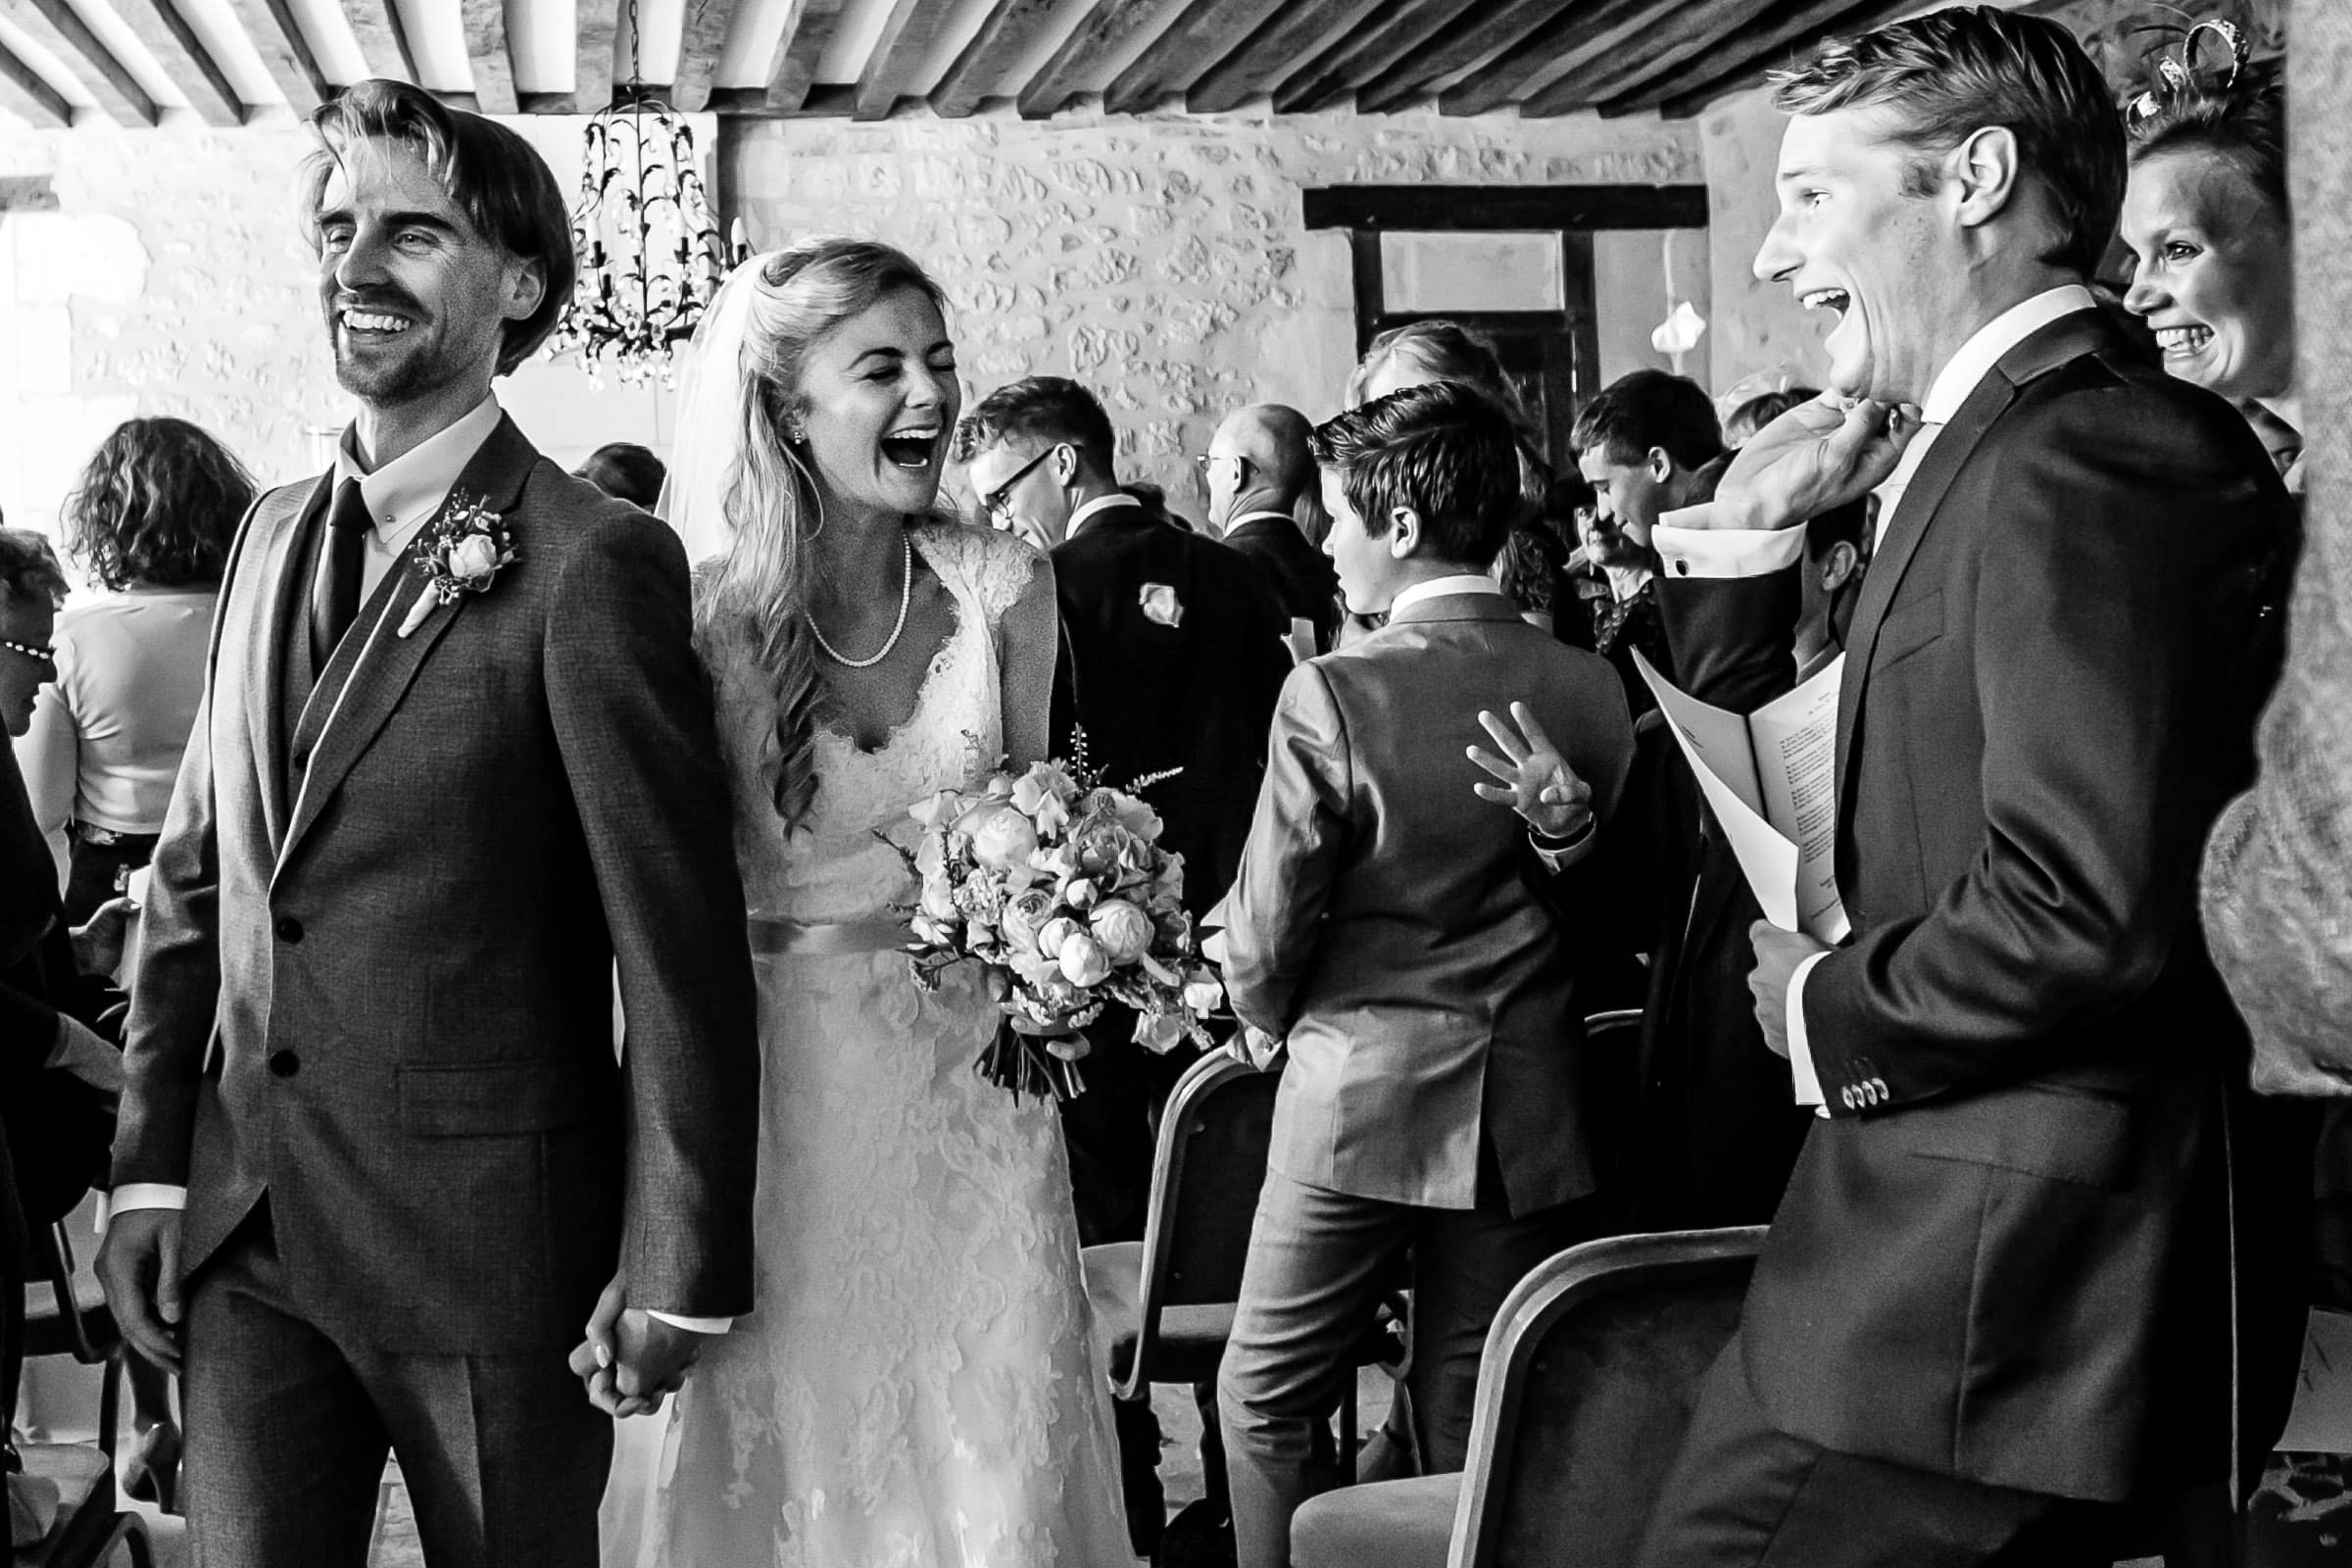 Bride and groom ecstatic excitement exiting their French Chateau wedding ceremony in Normandy France